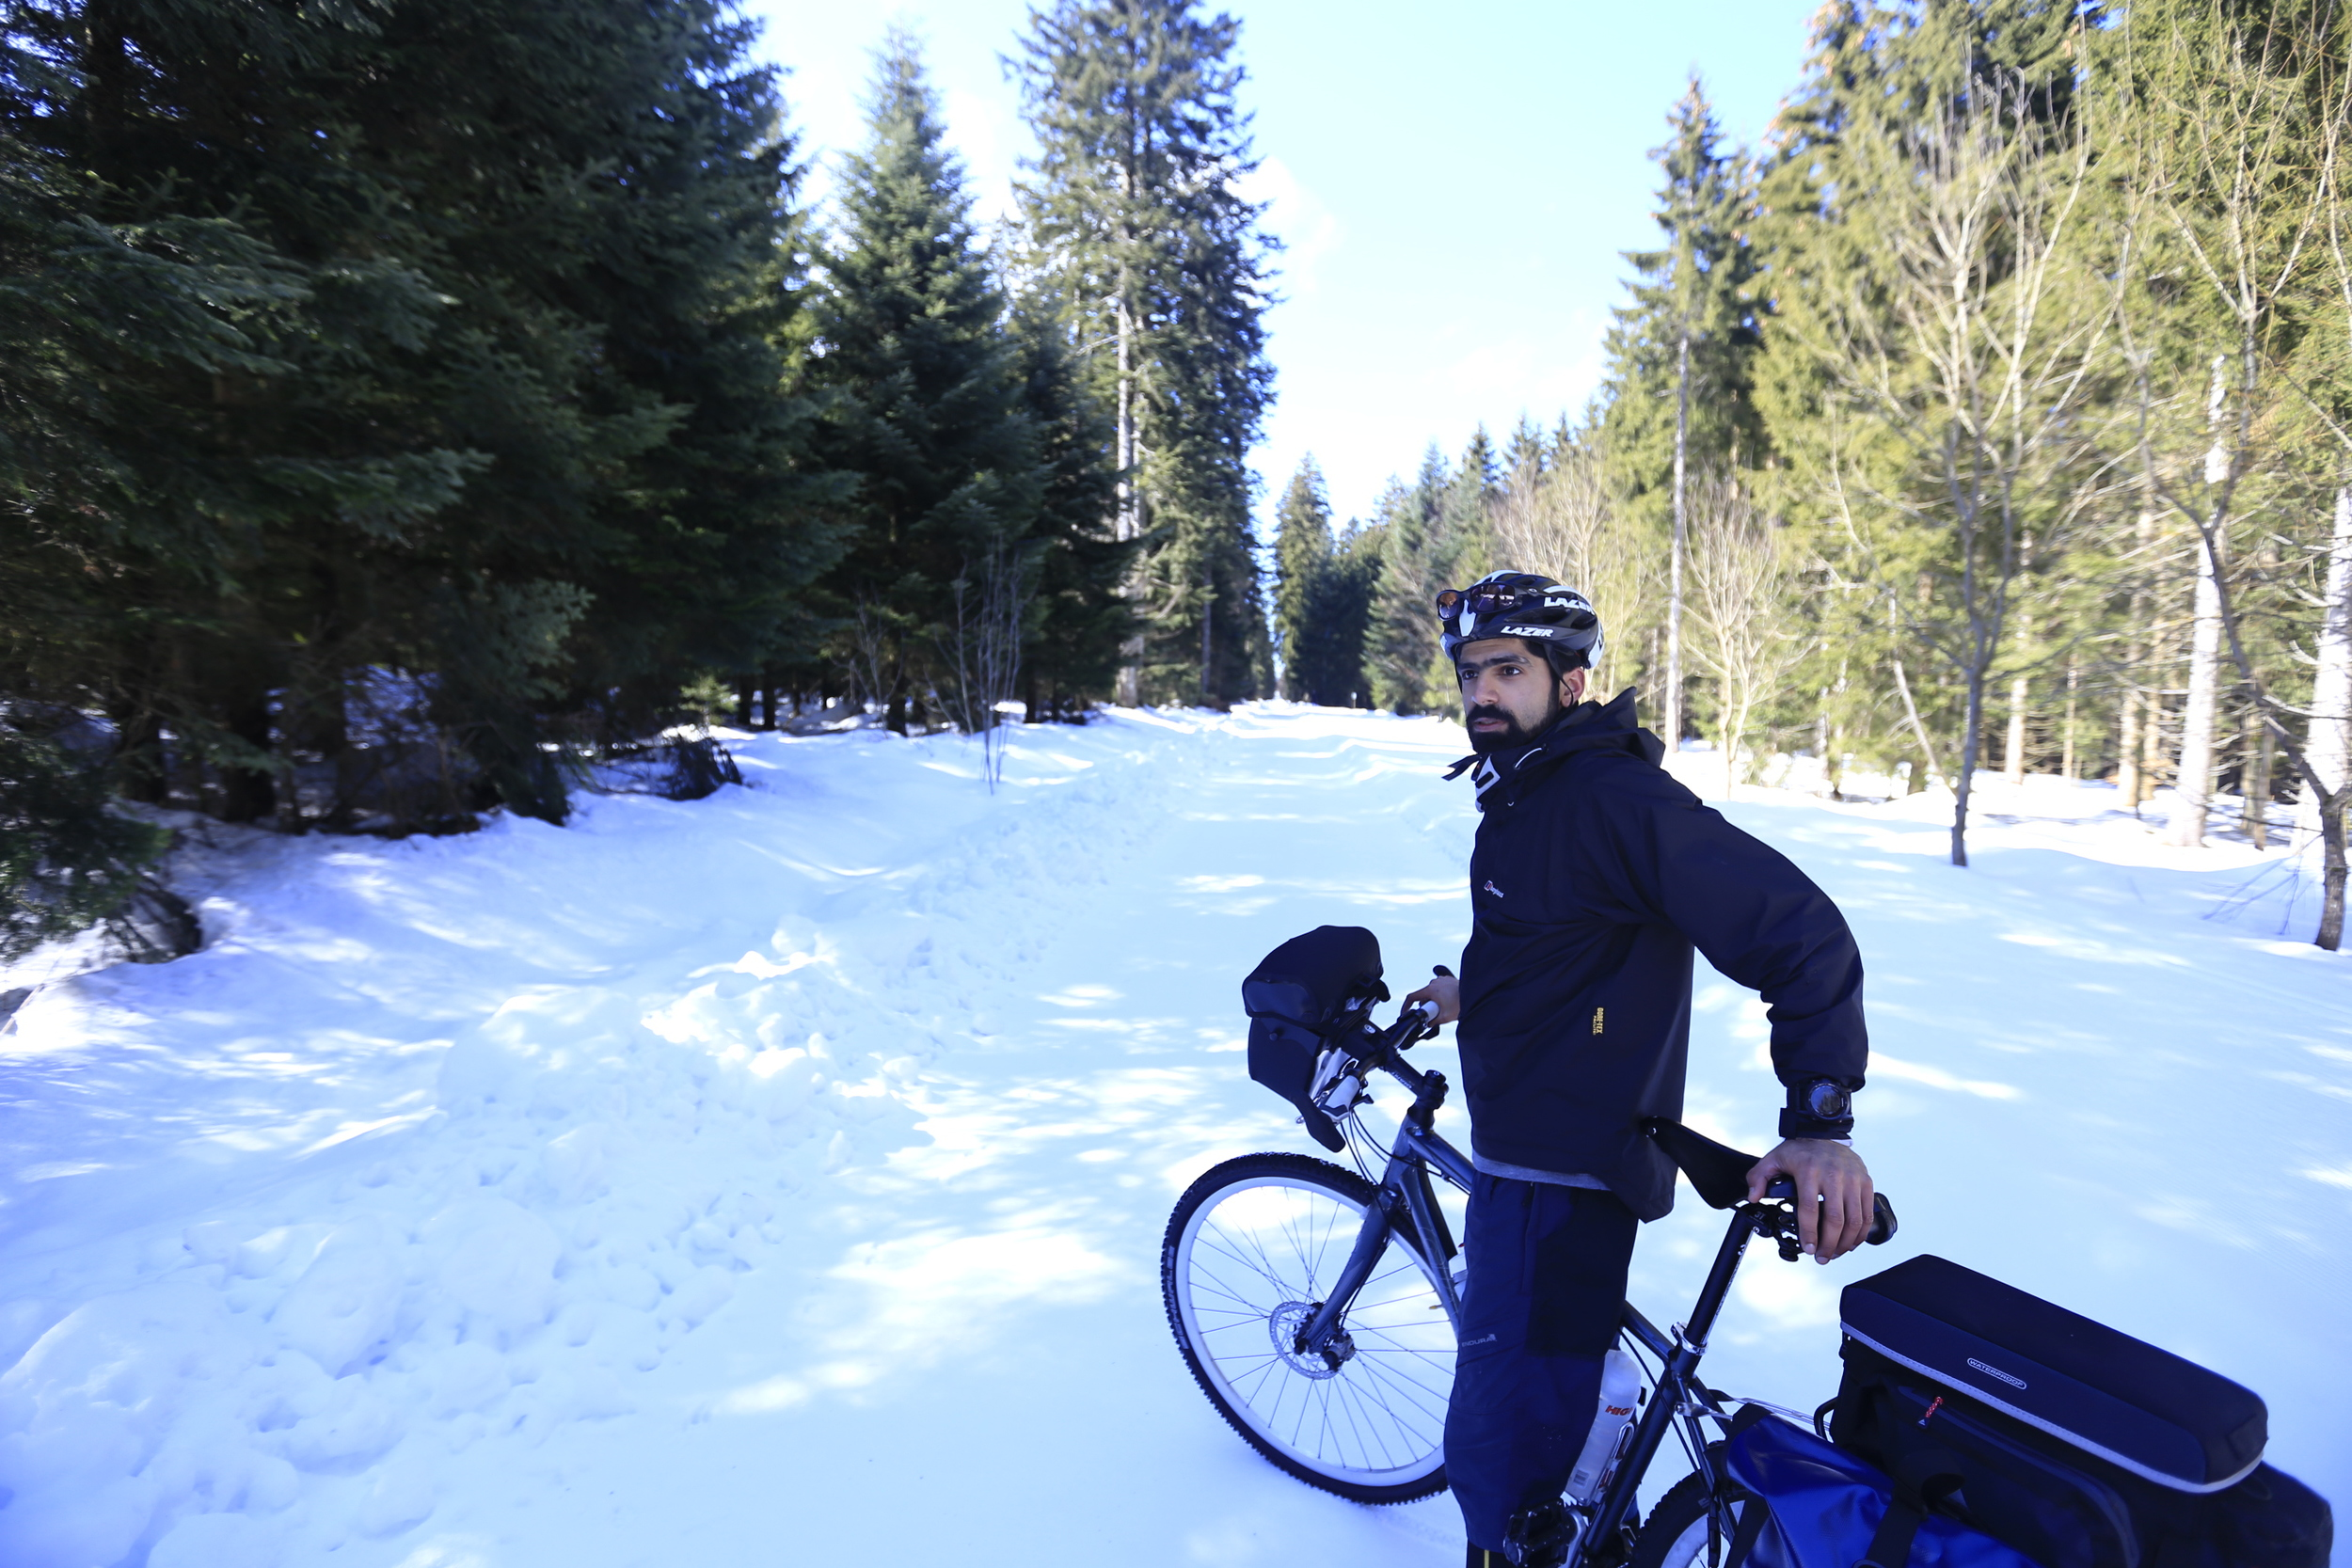 mo, giant, giant hybrid, ortlieb, axiom, trunk bag, snow, black forest, germany, bicycle touring apocalypse, cycling blog, bikepacking blogt